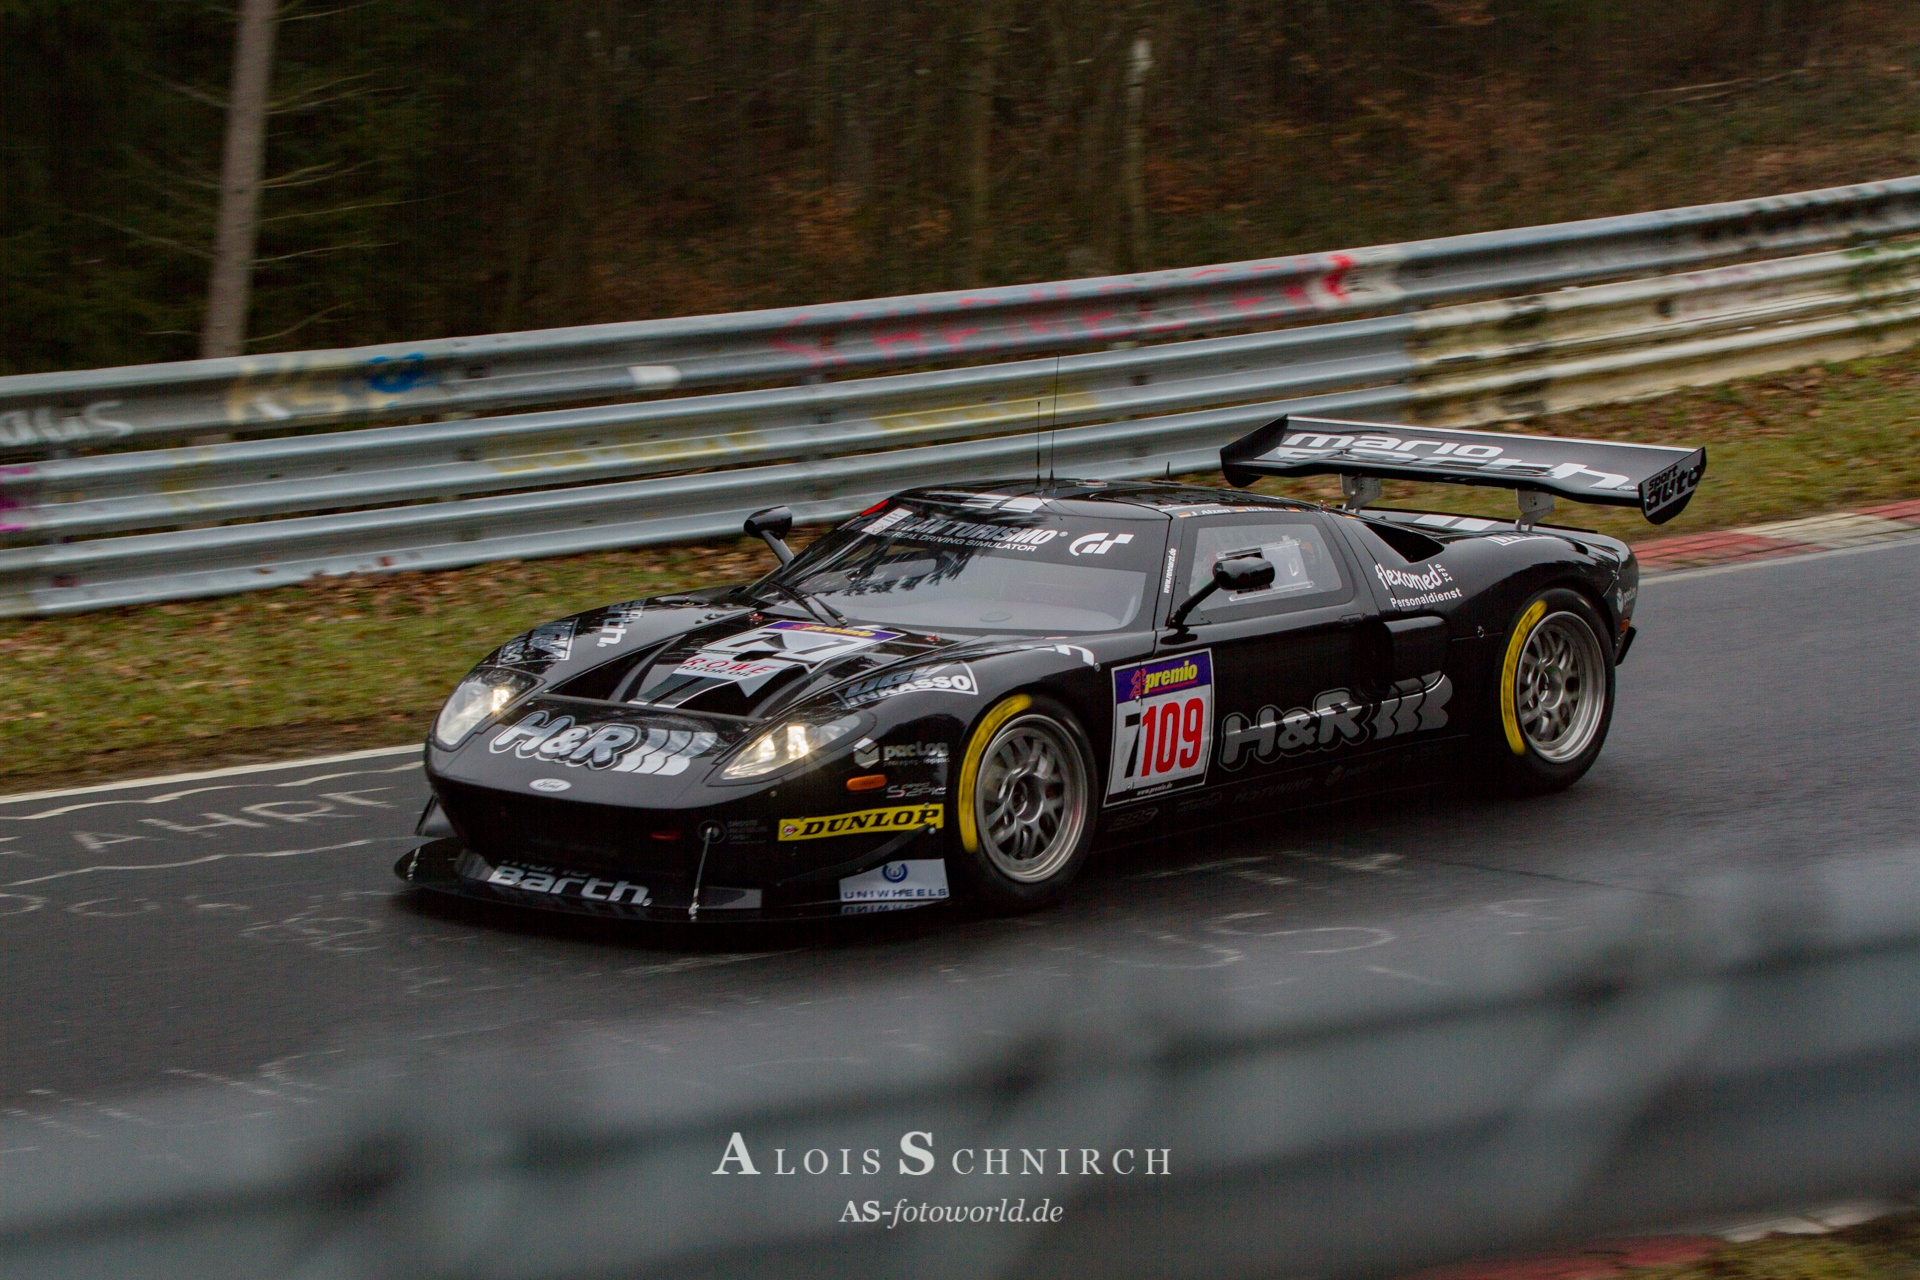 Ford GT3  by Alois Schnirch